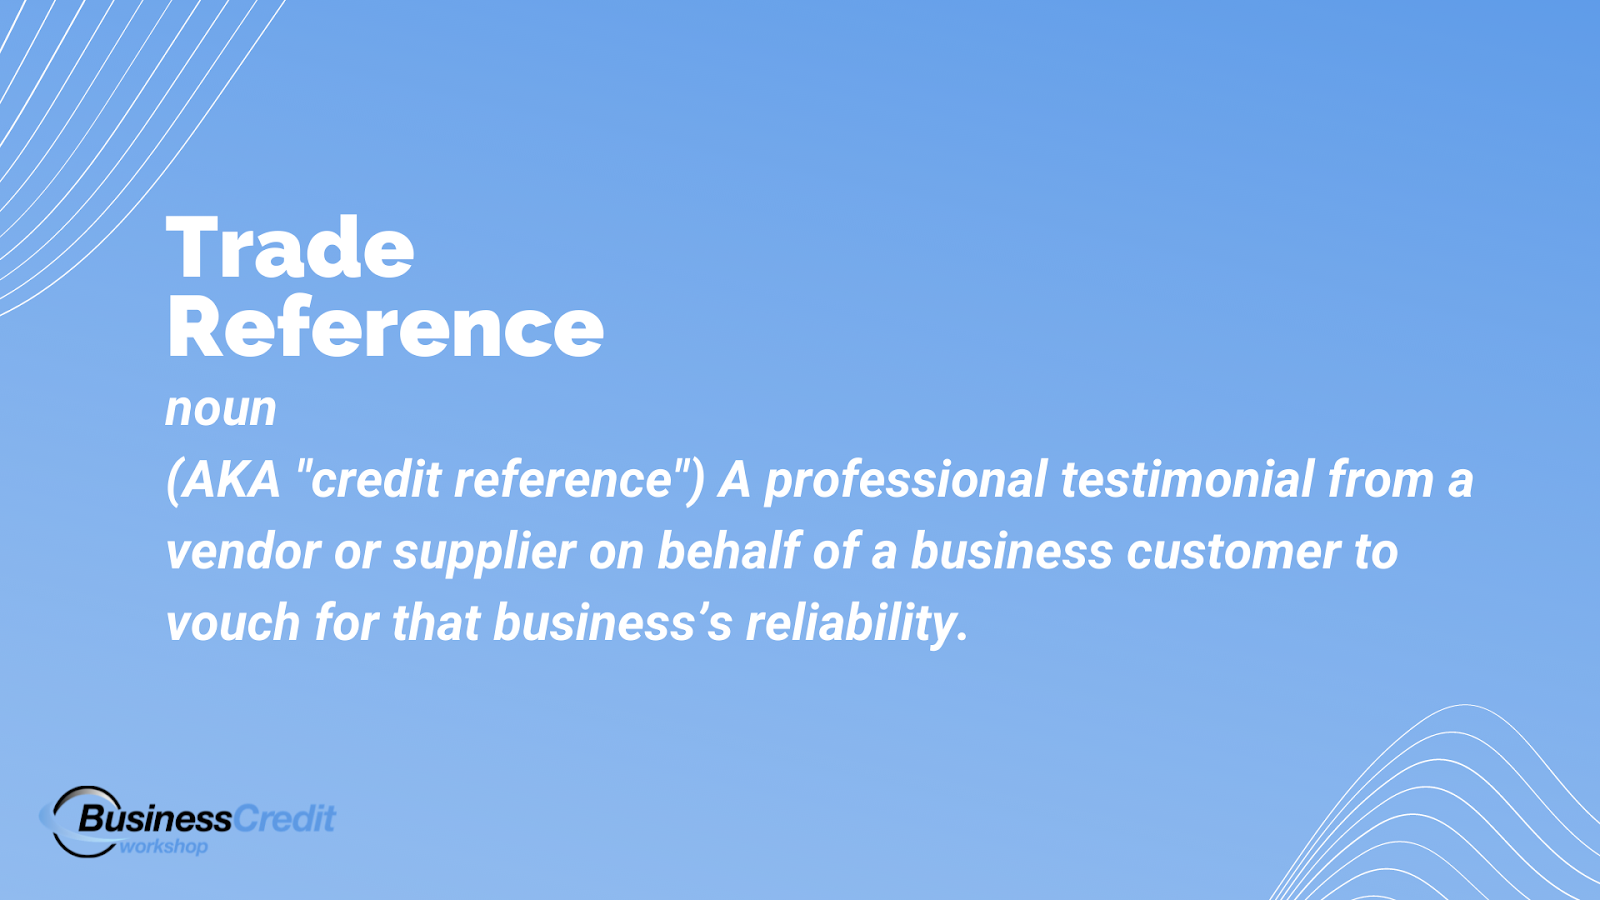 Trade references meaning